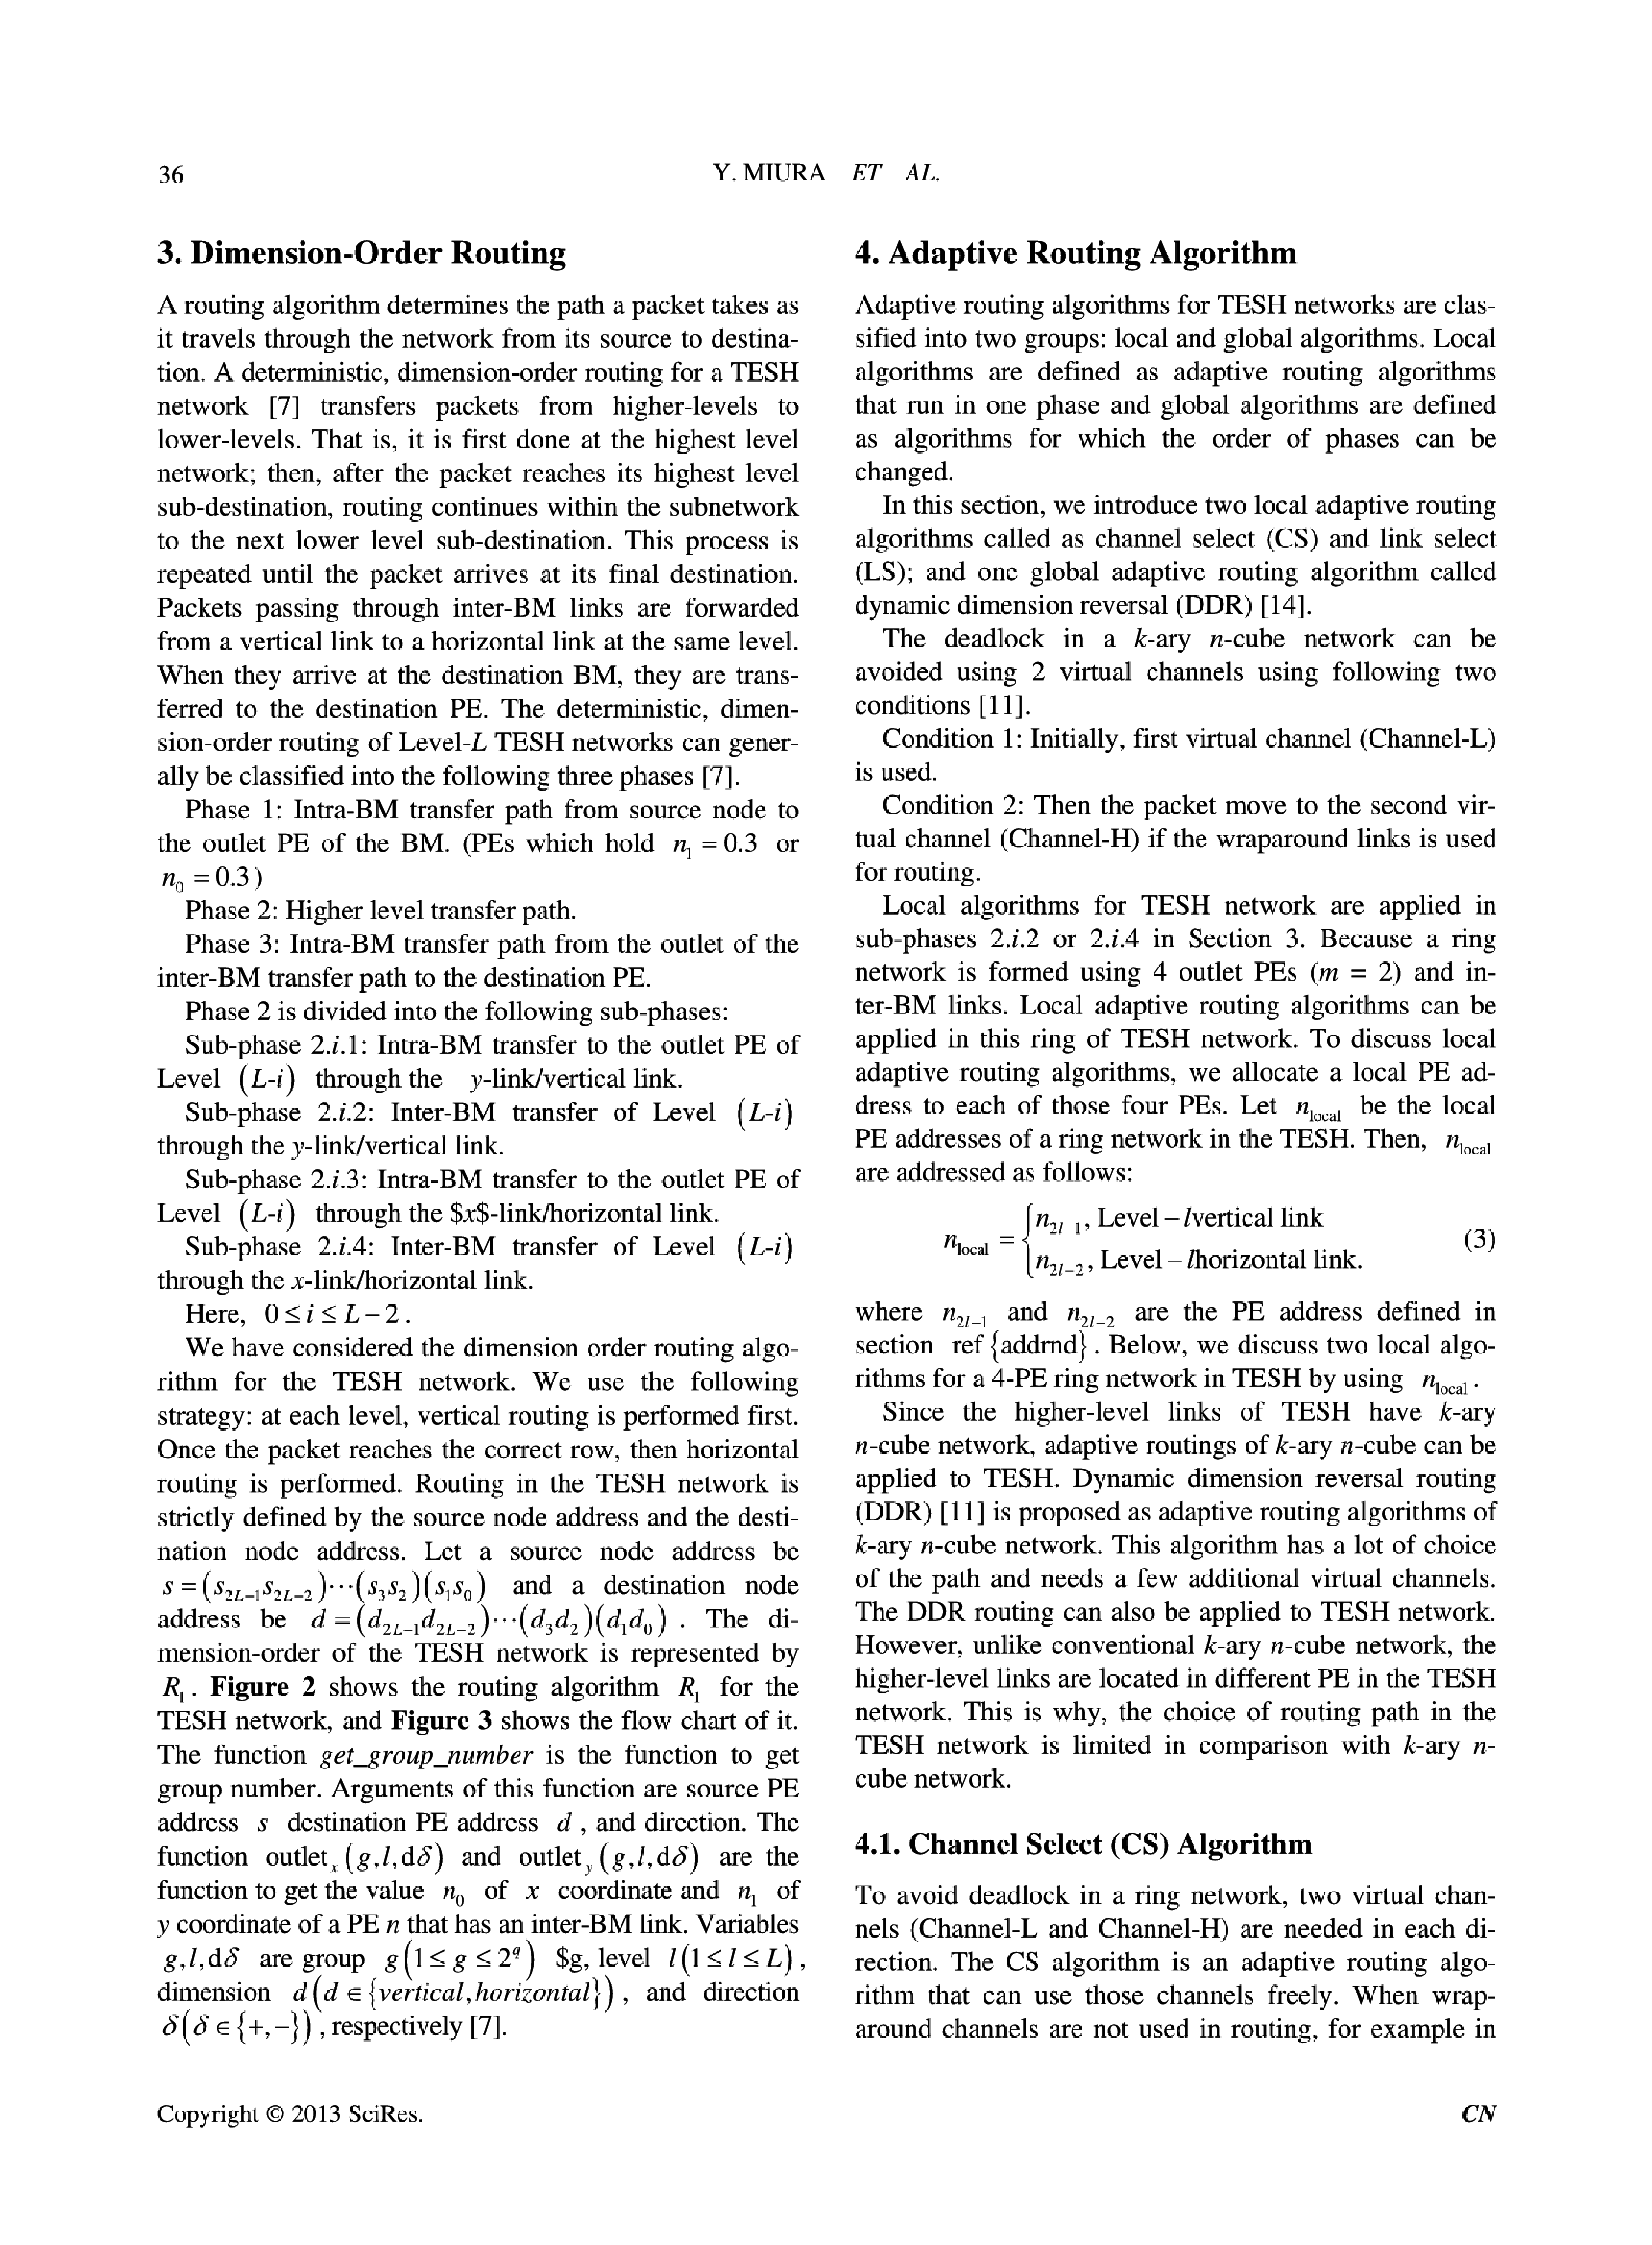 Adaptive Routing Algorithms and Implementation for TESH Network Journal - Page 4